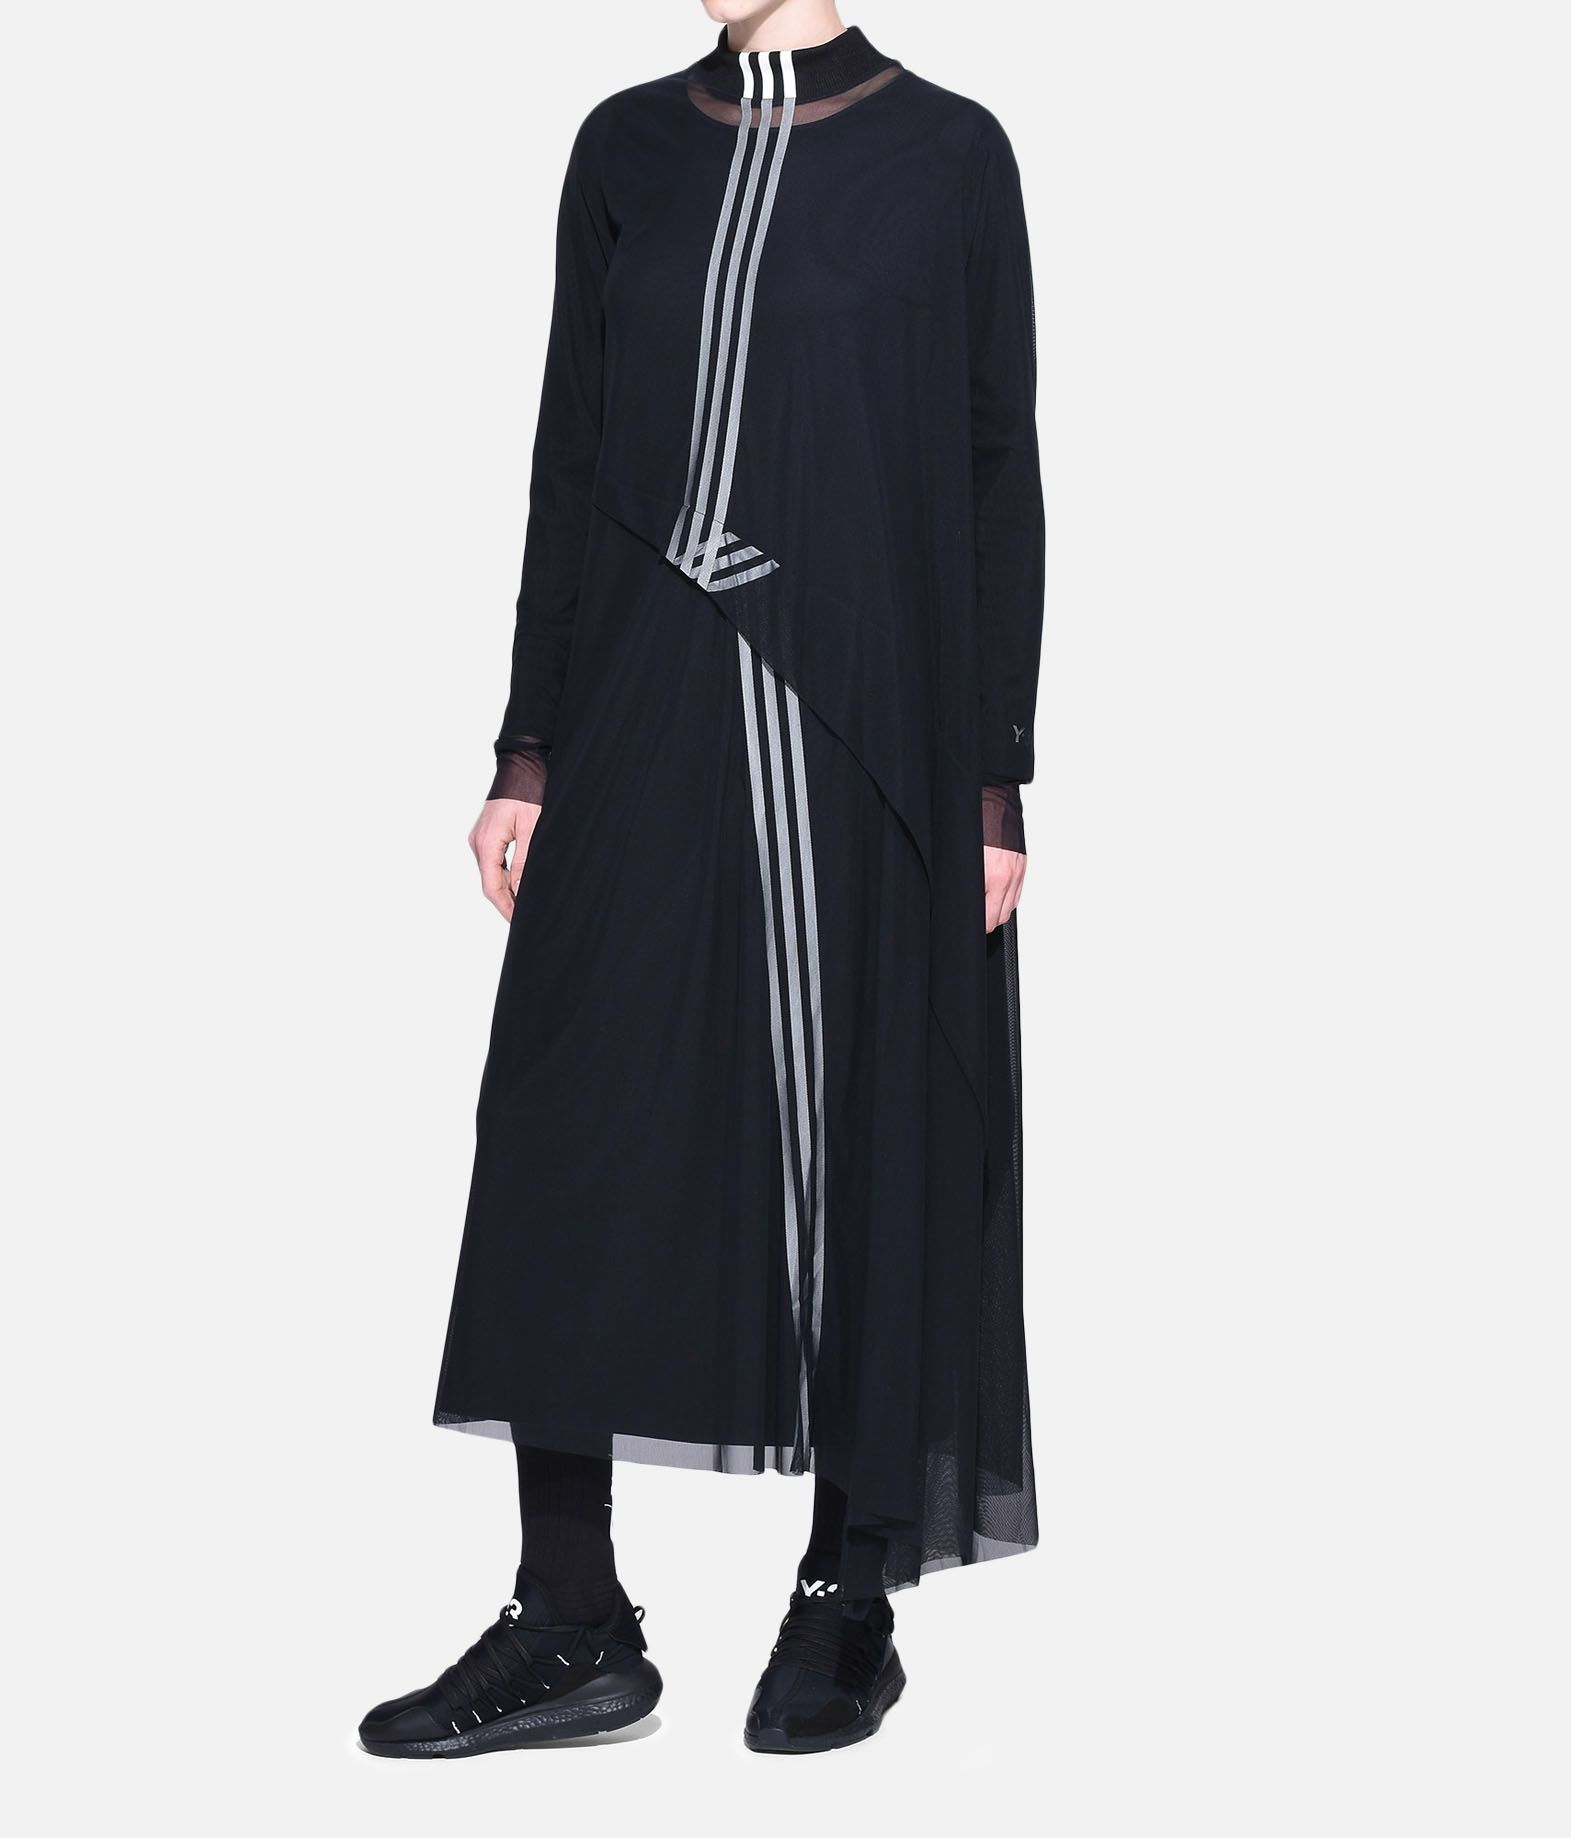 Y-3 Y-3 3-Stripes Mesh Dress Long dress Woman a